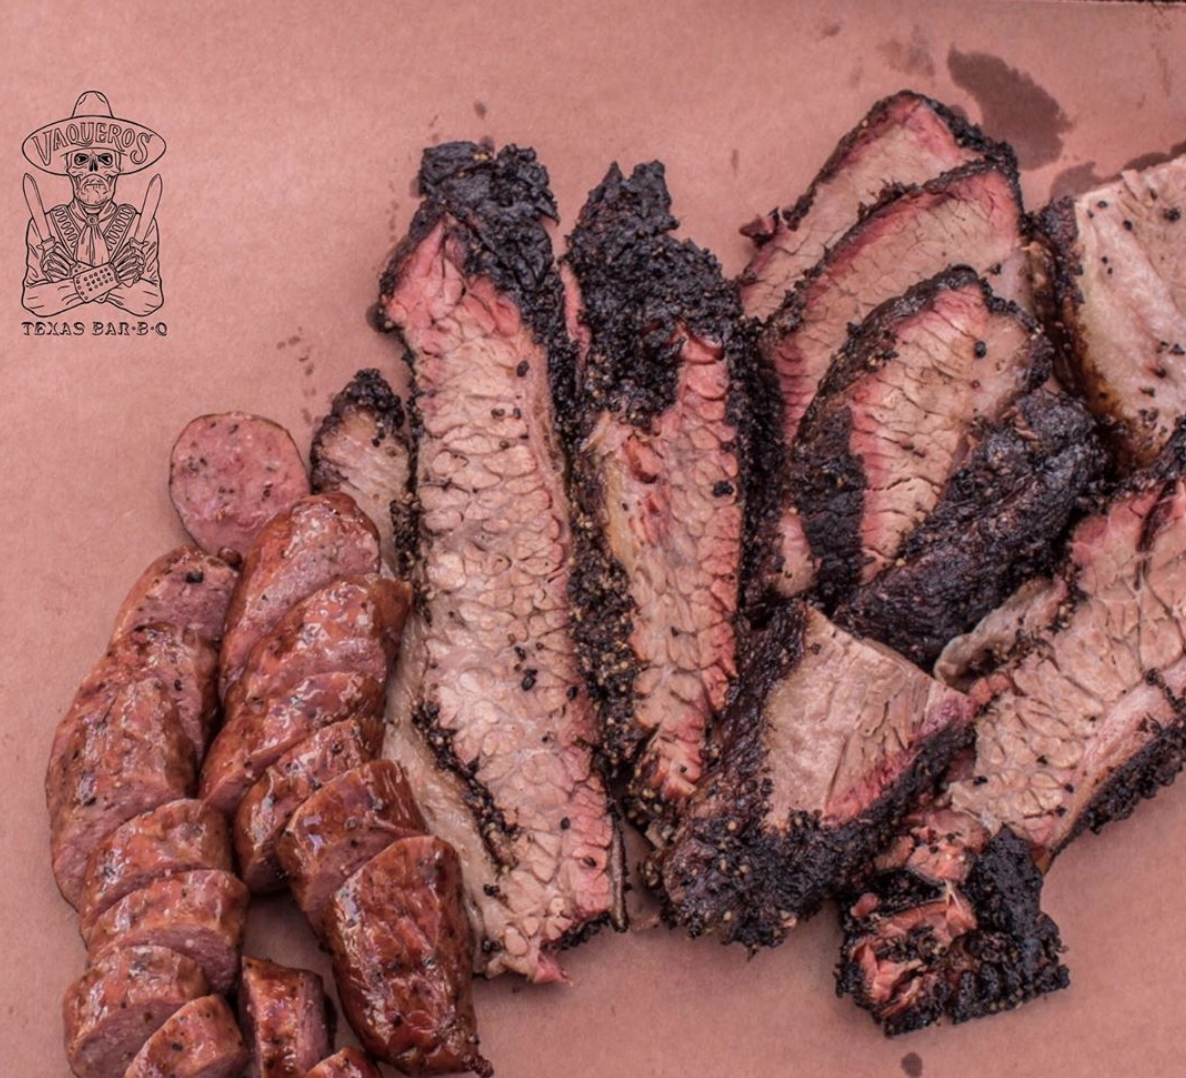 Sausage and Brisket from   Vaqueros Texas BBQ   - Dallas/Fort Worth